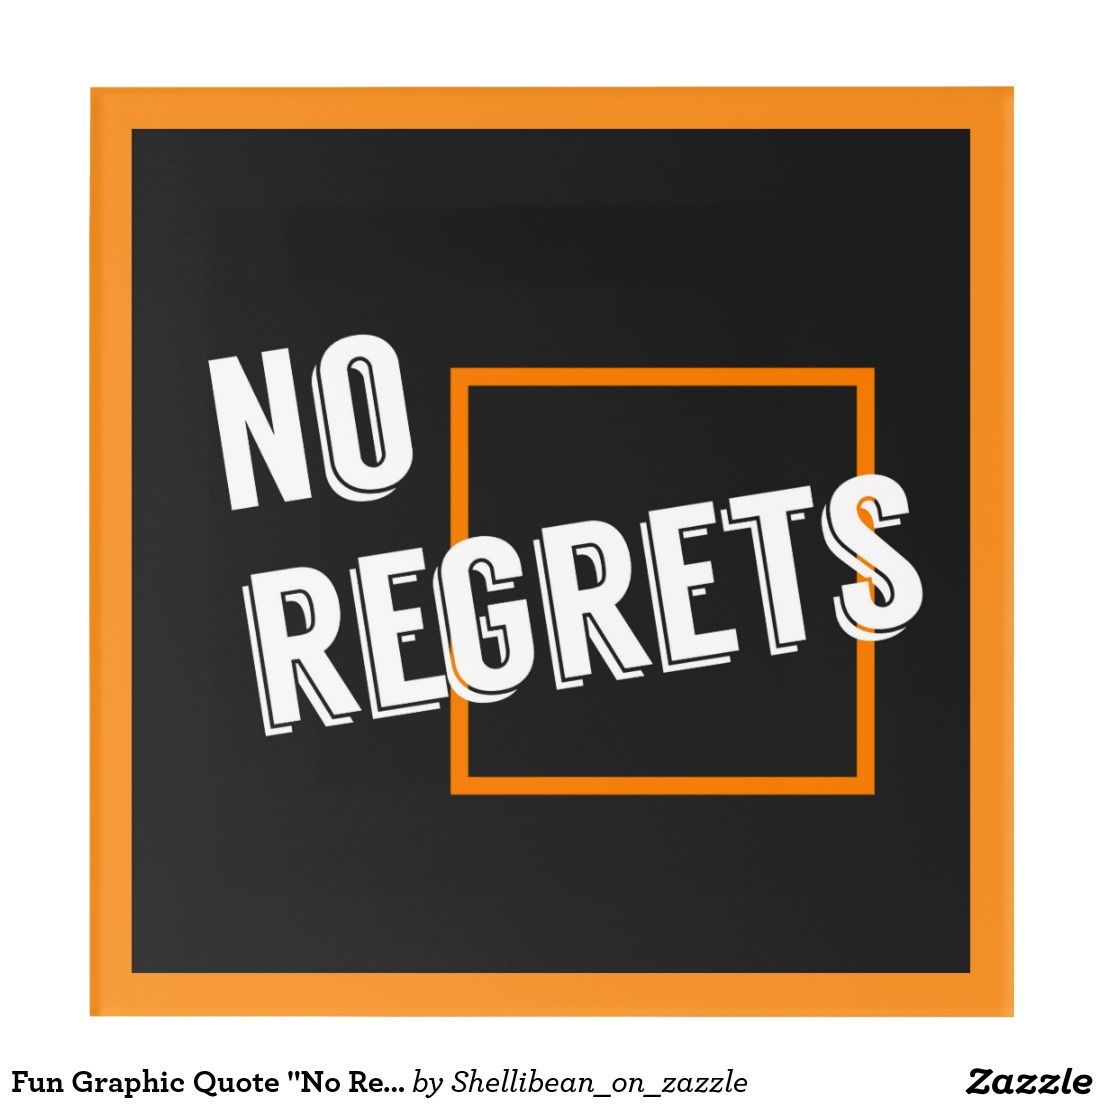 "Fun Graphic Quote ""No Regrets"" Typography Text"